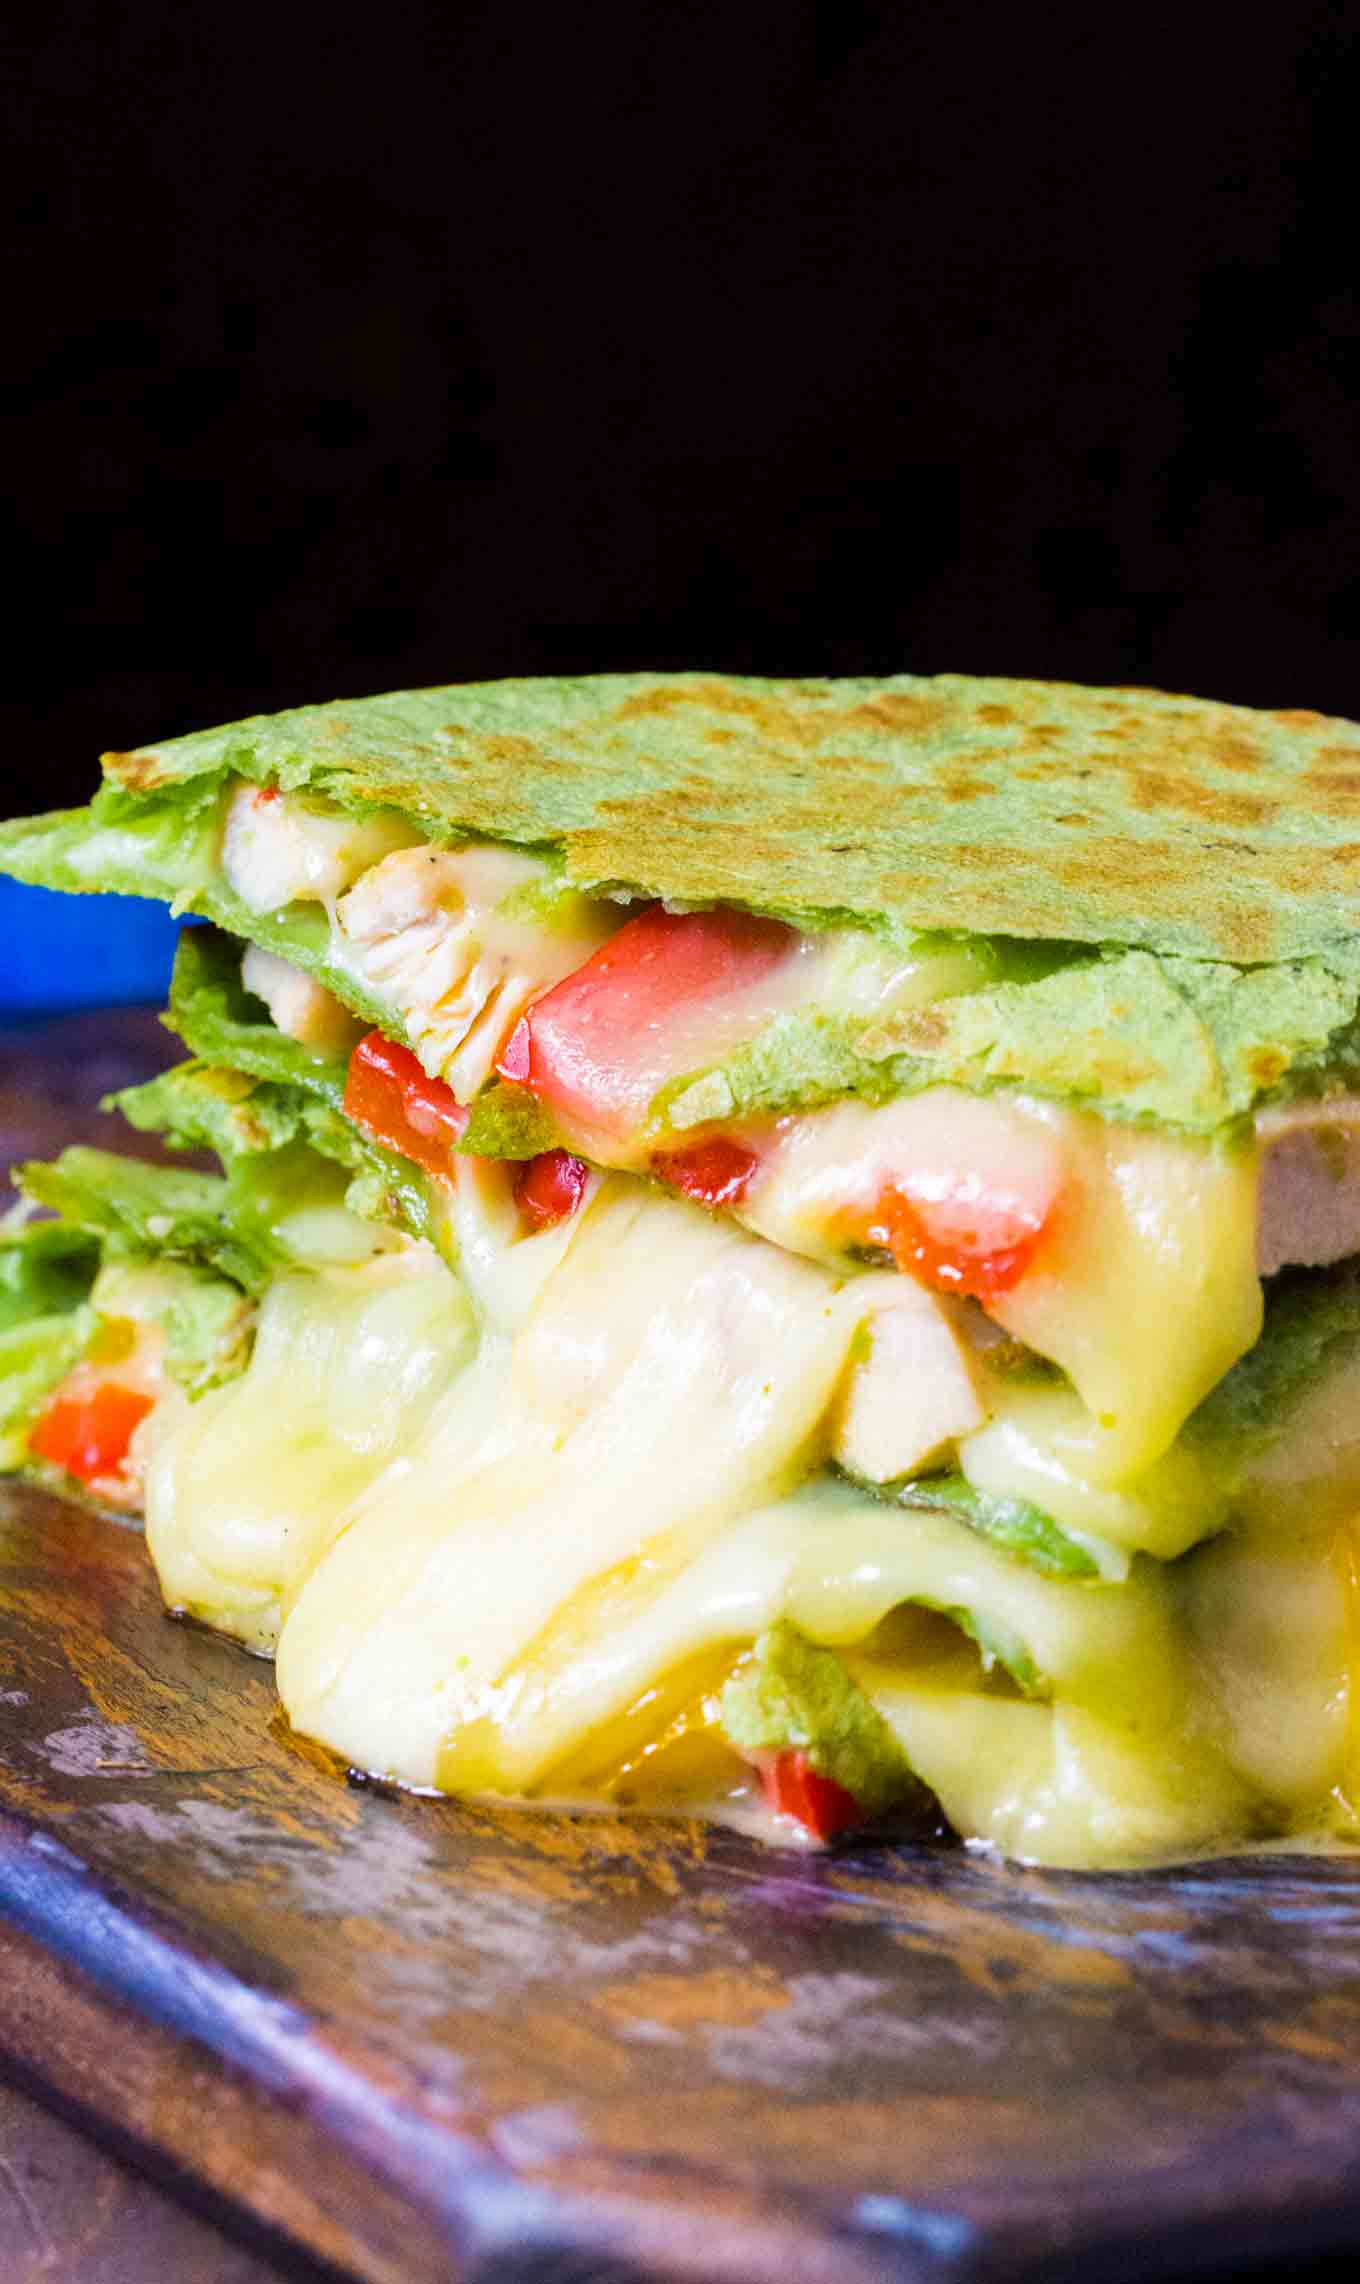 Skillet Chicken Fajita Quesadilla is loaded with juicy and tender chicken meat, crunchy bell peppers and lots of delicious, melting cheese.